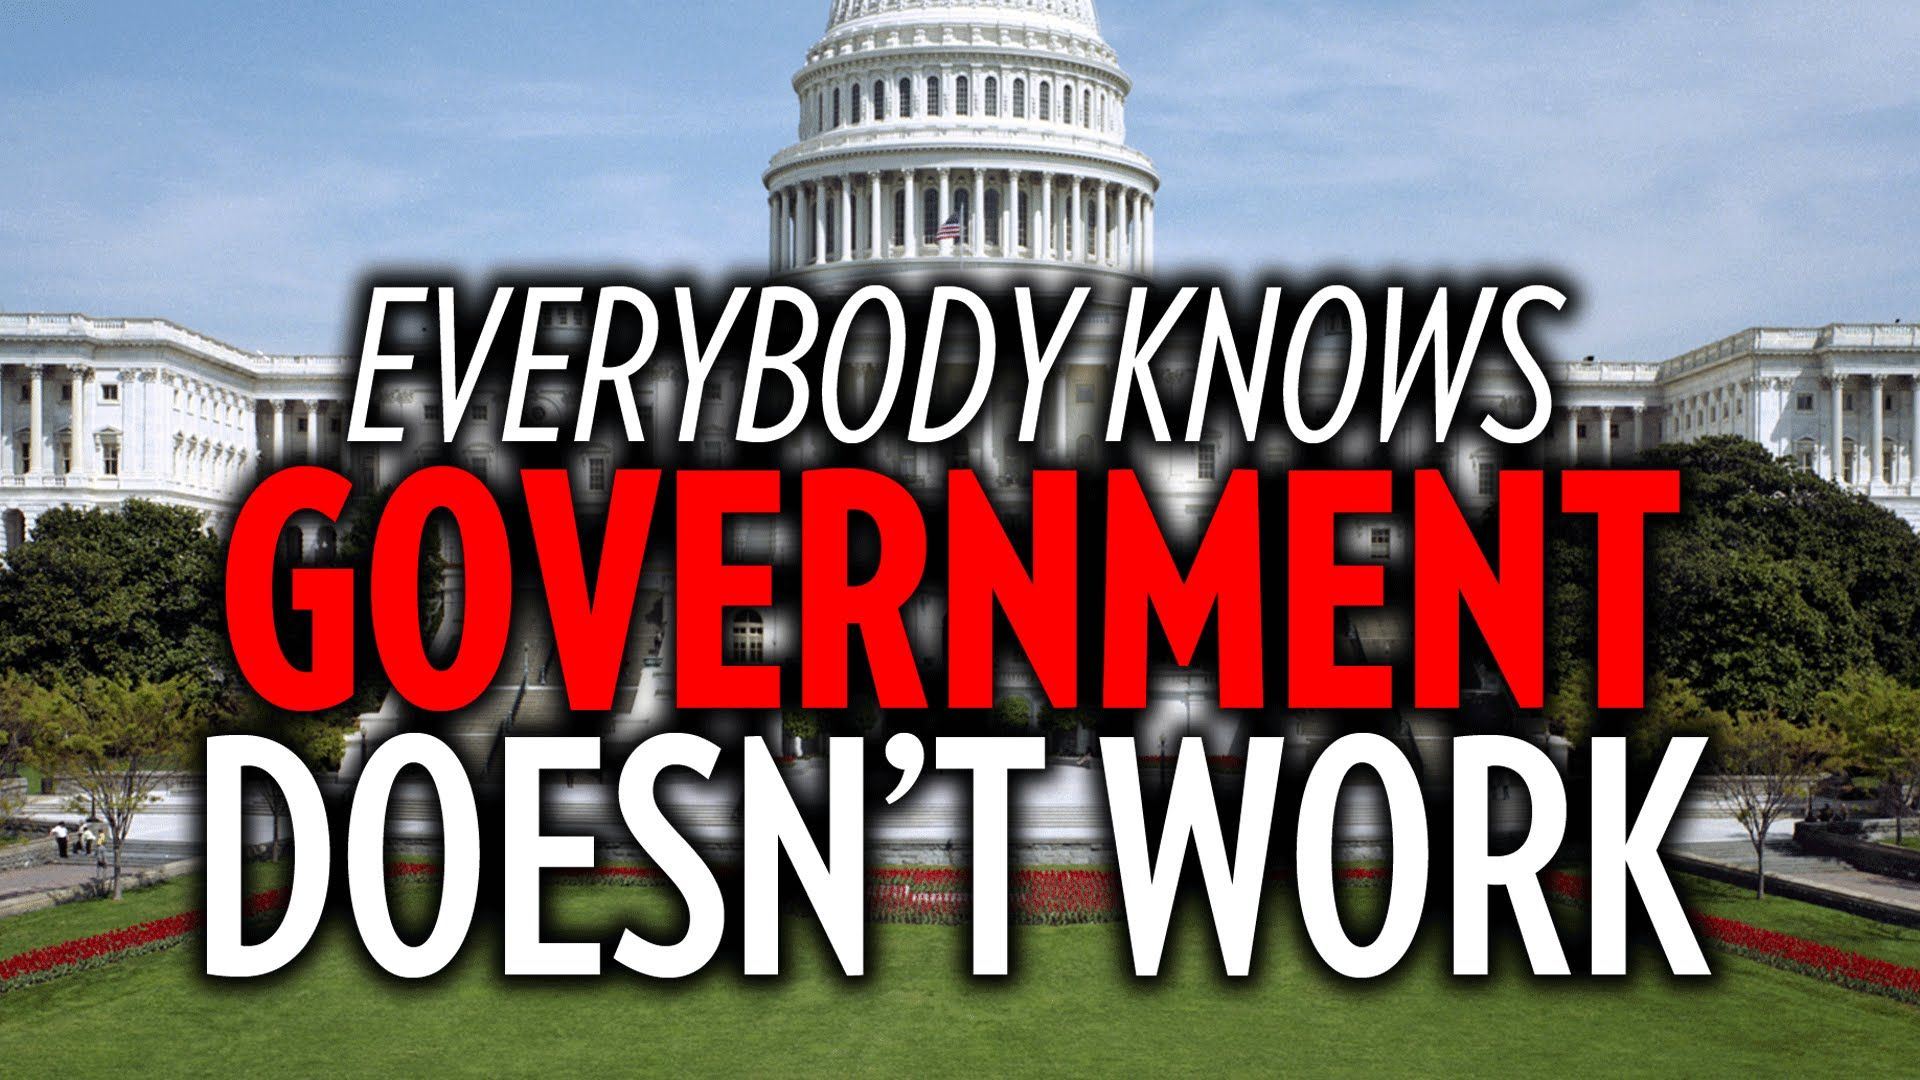 Government Doesn T Work